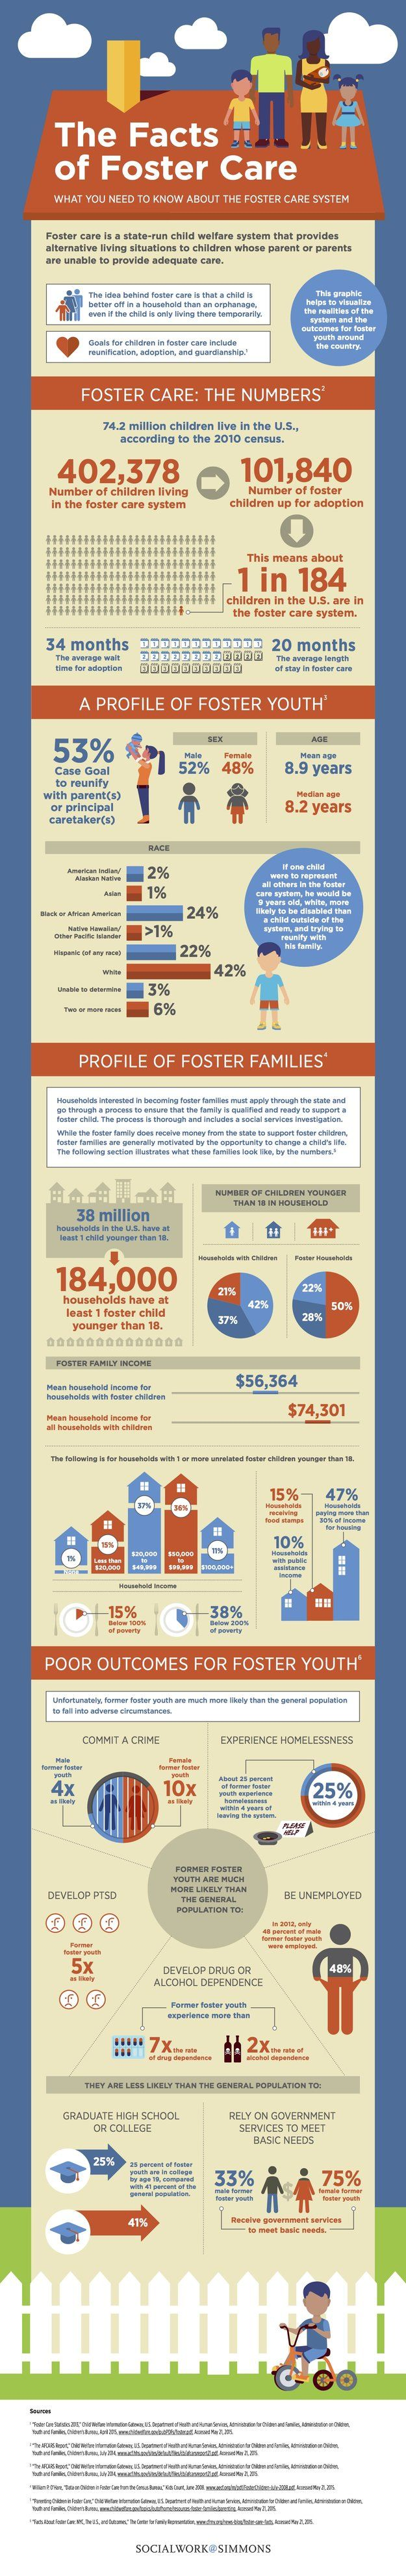 Facts on Foster Care {infographic}